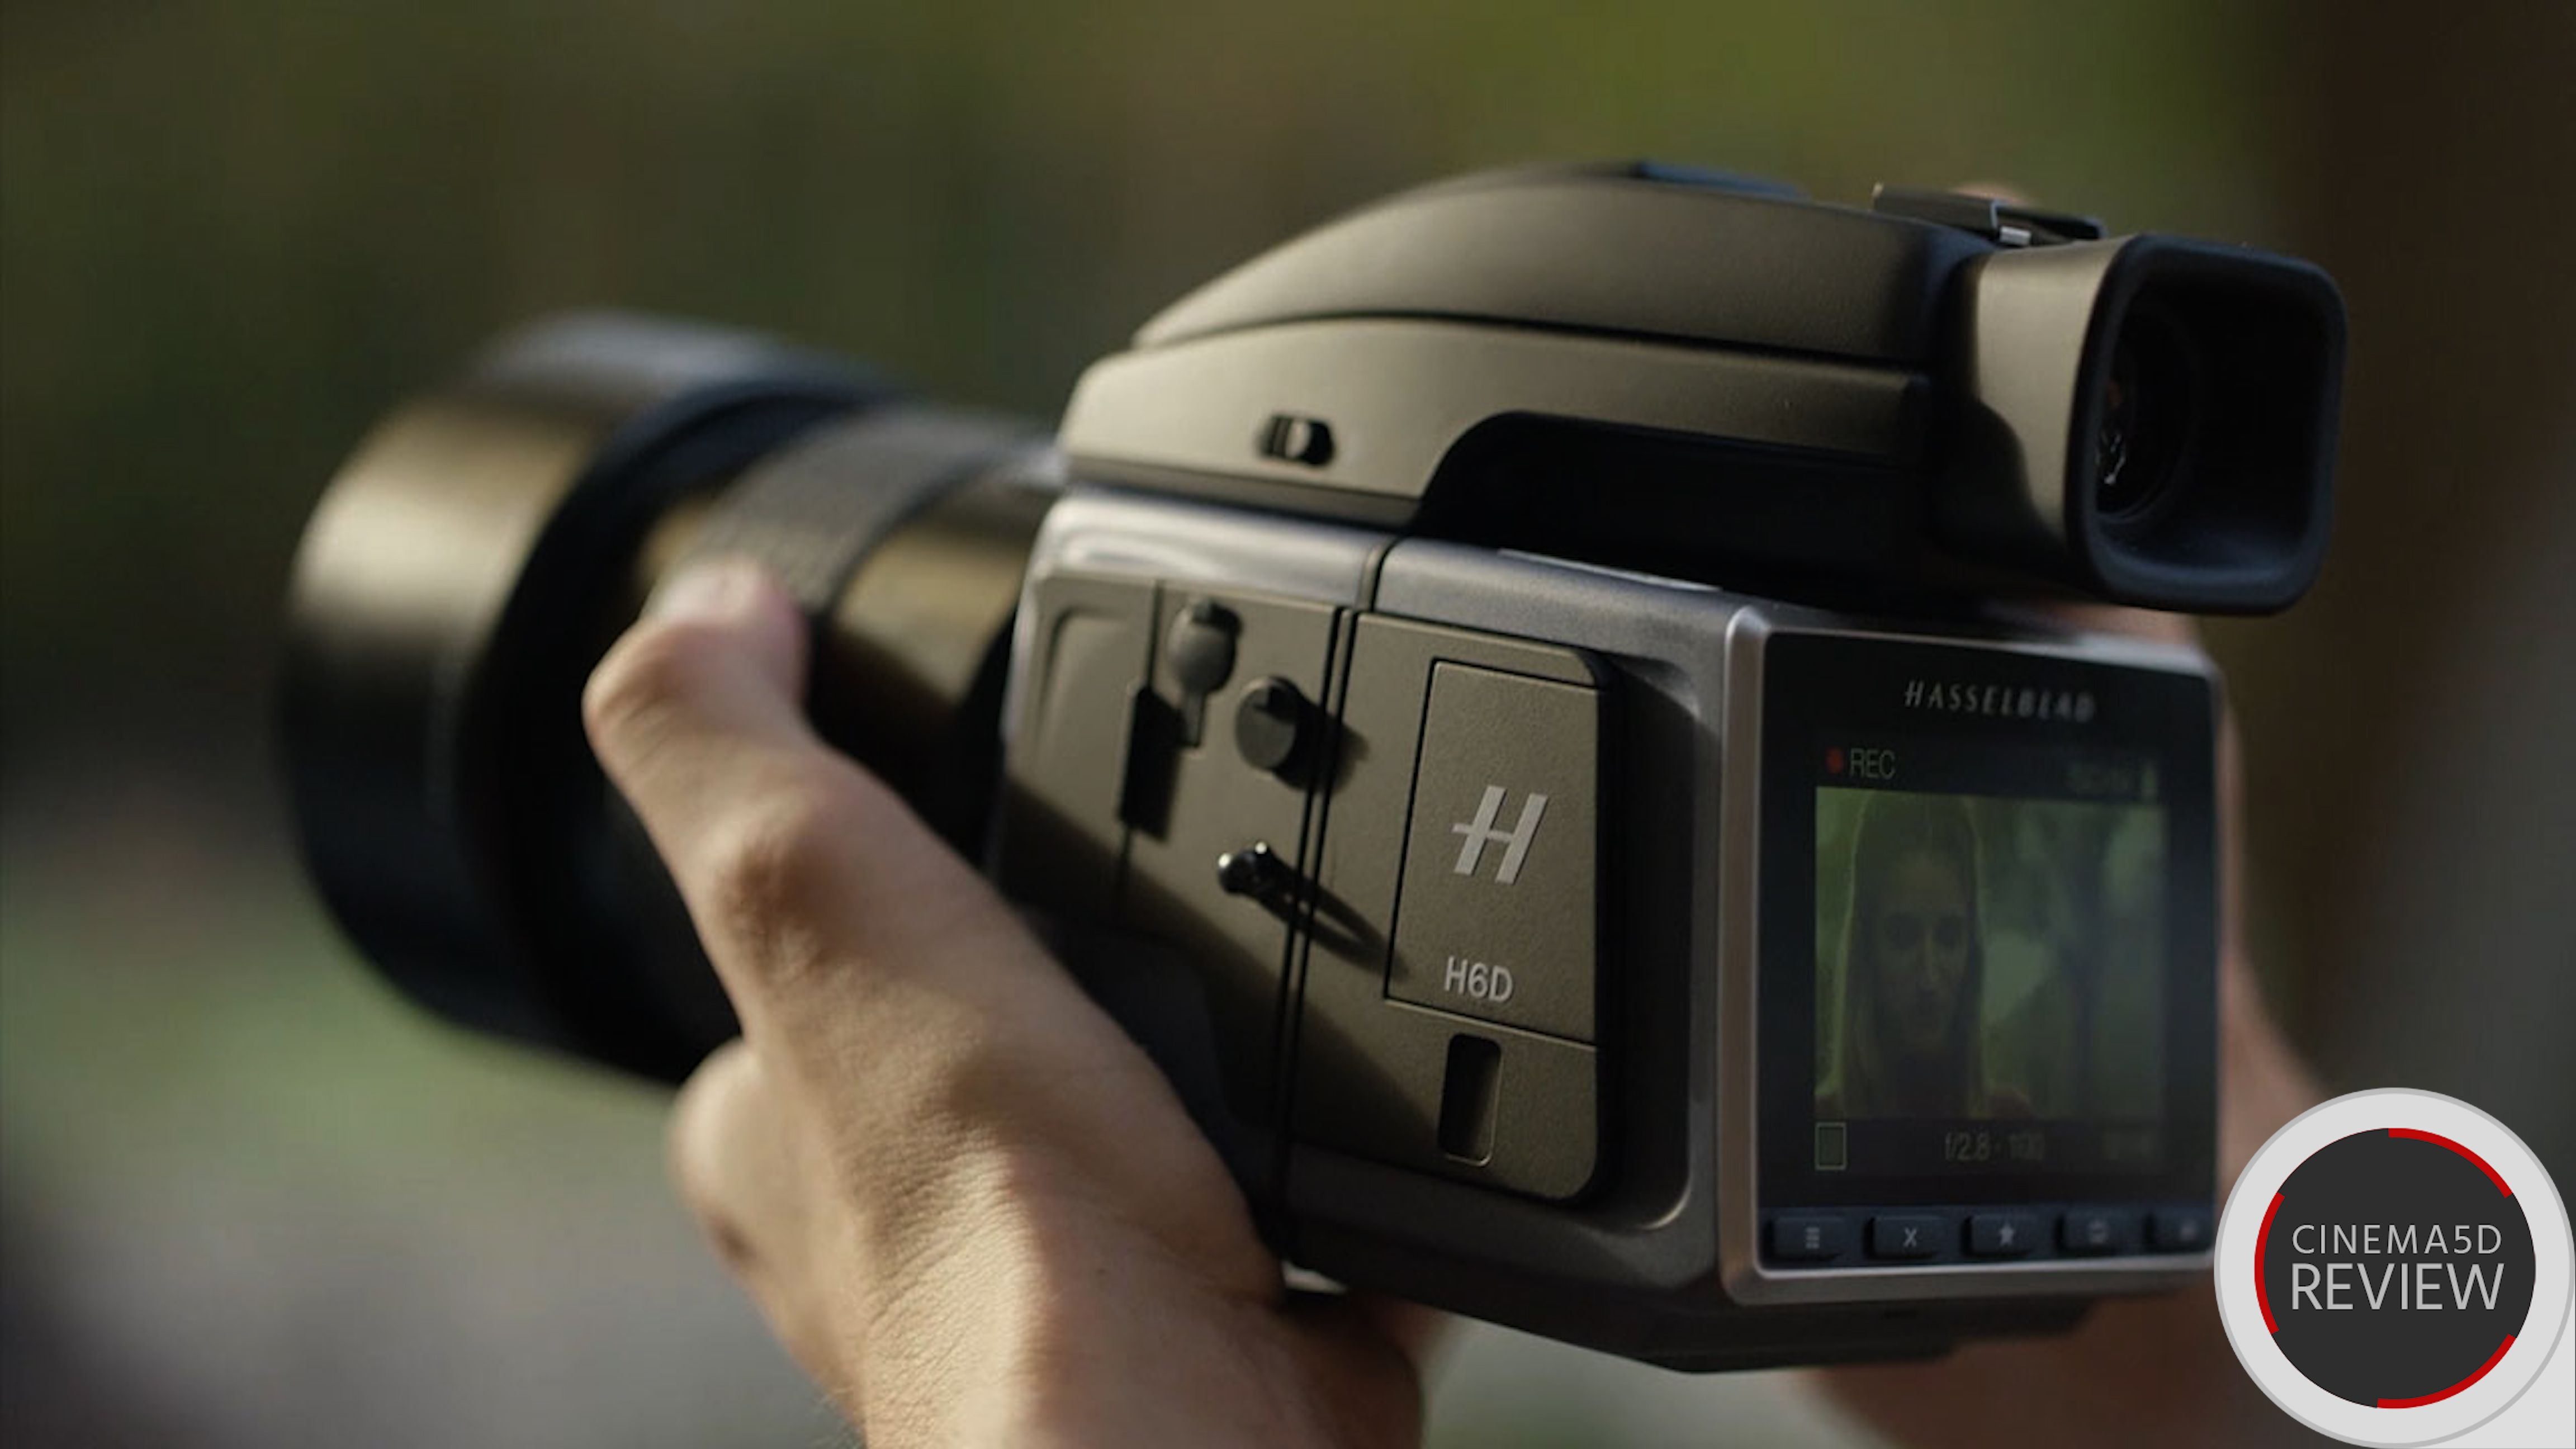 Hasselblad H6d 100c Review Shooting Medium Format Video Videography Hasselblad Videography Medium Format Camera